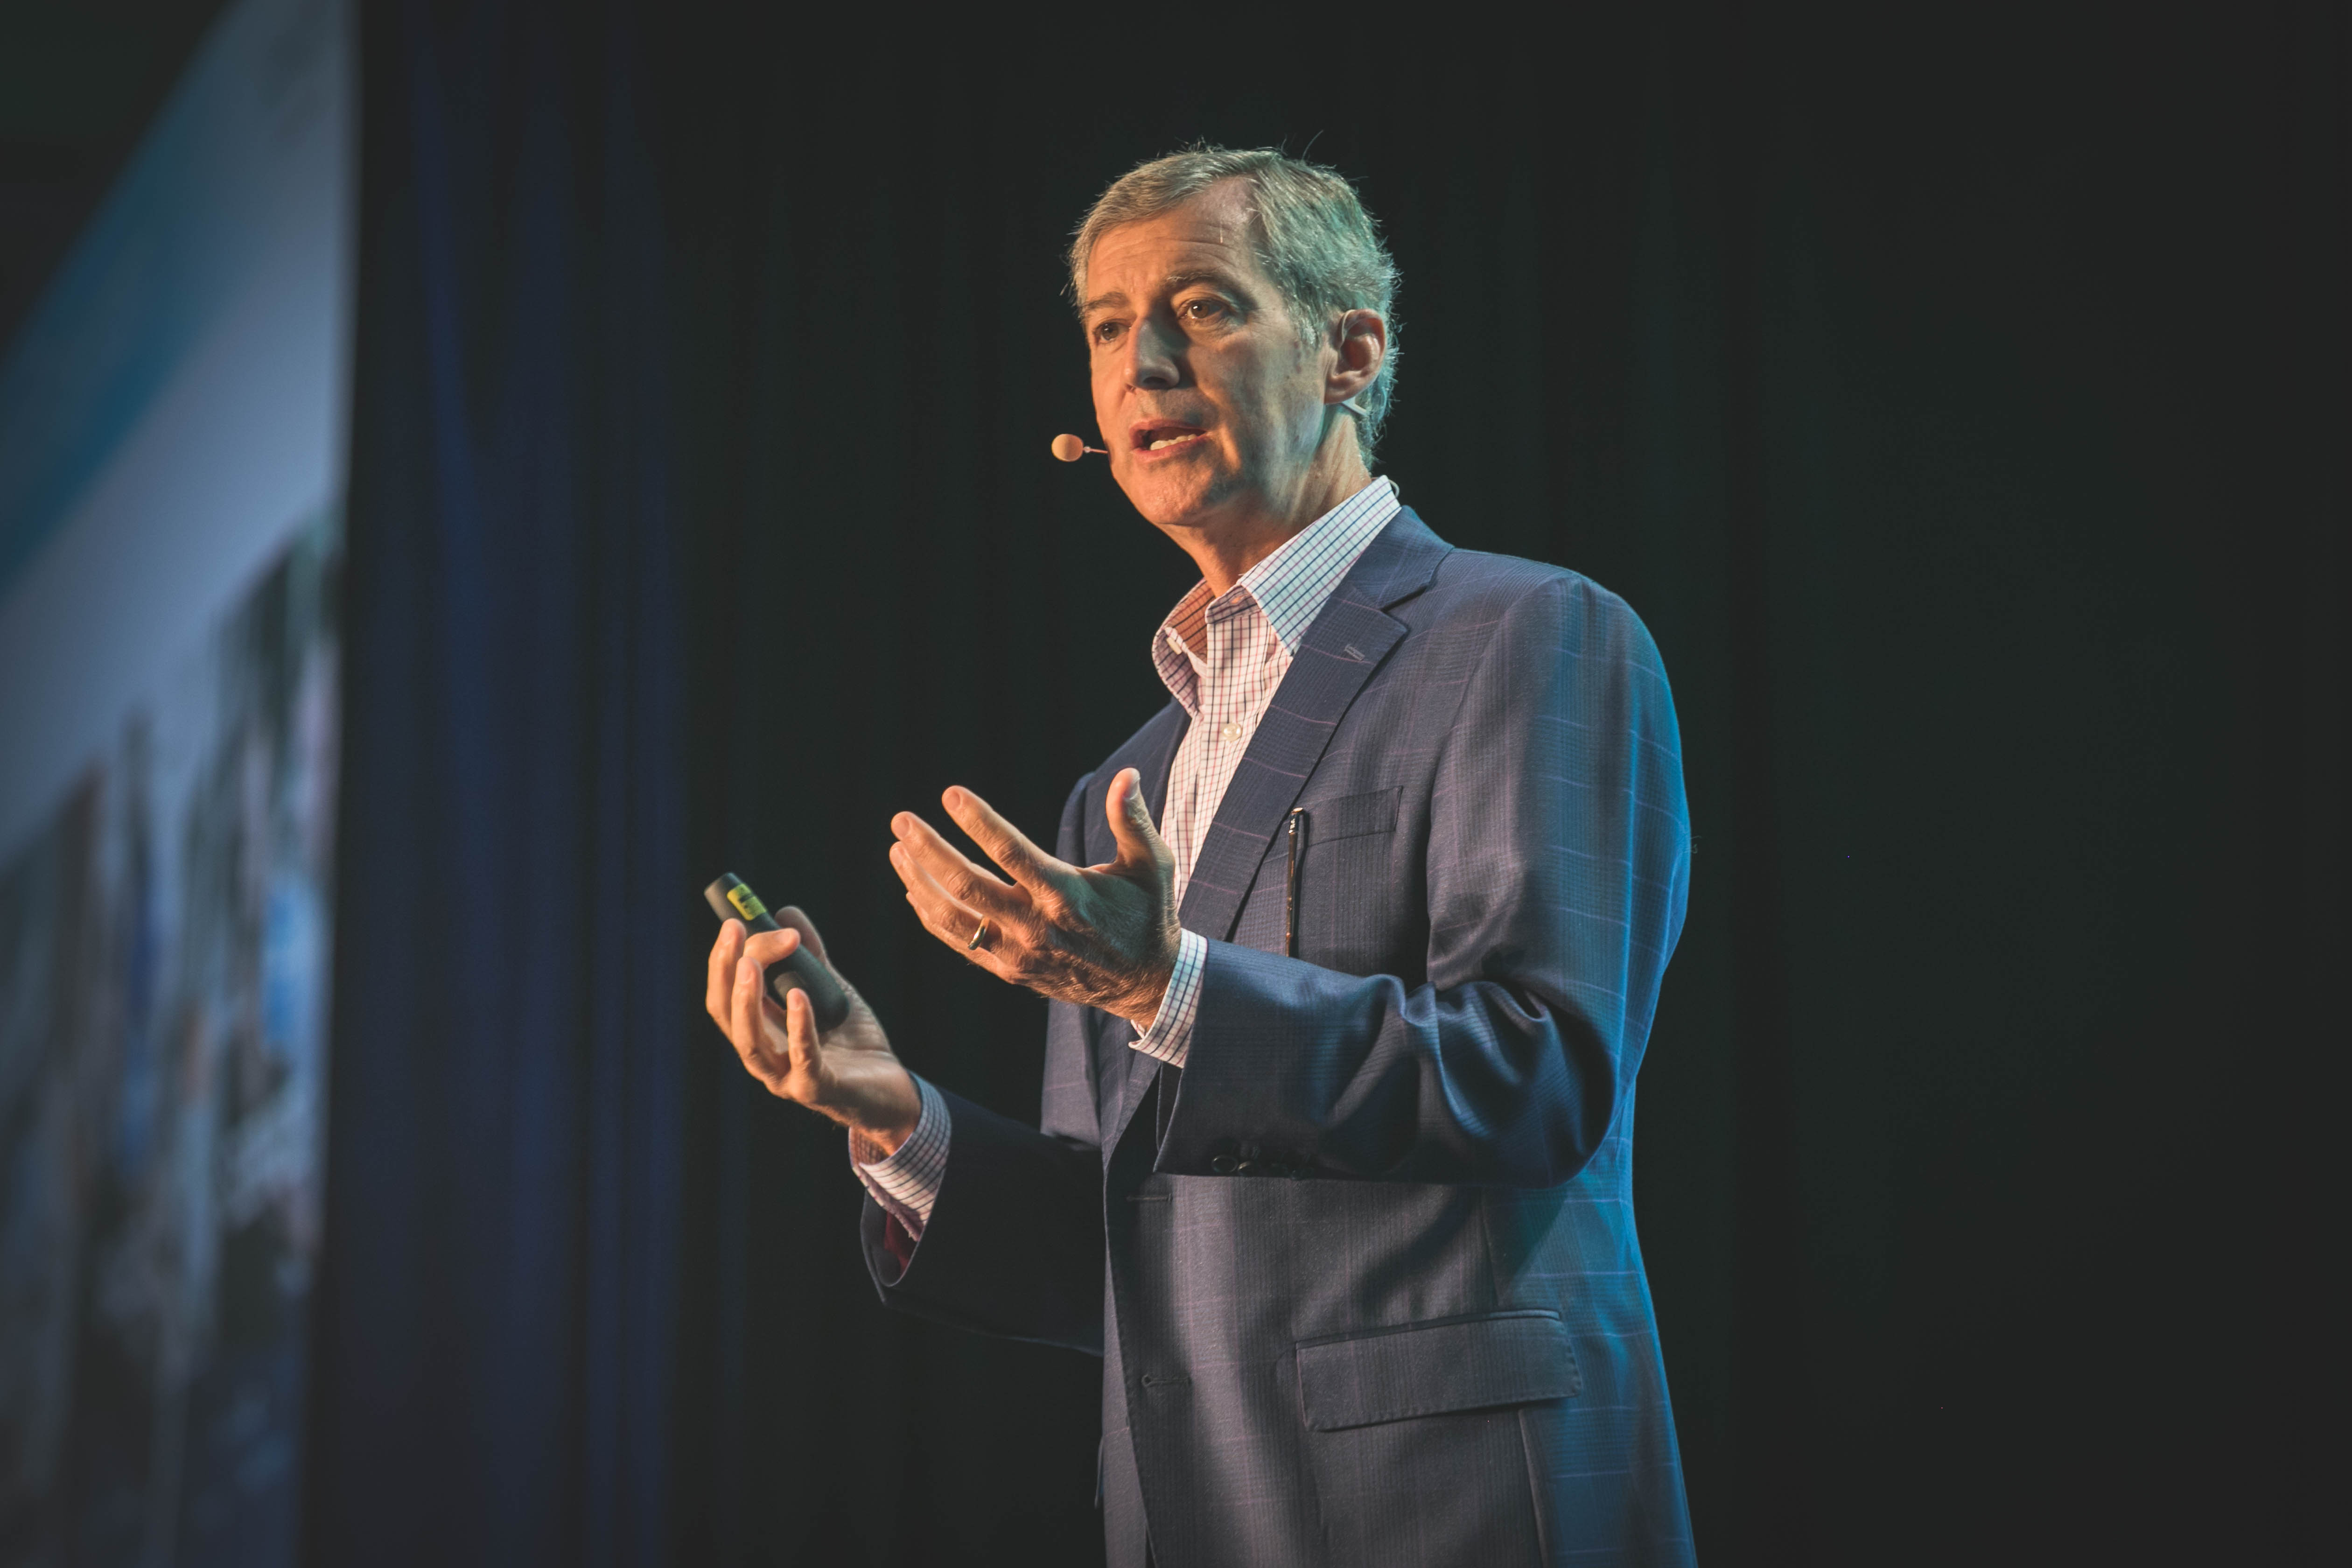 Cox Automotive Executive Vice President and Chief Operating Office Mark O'Neil delivers a keynote address on the future of connected retail for the company and the industry.